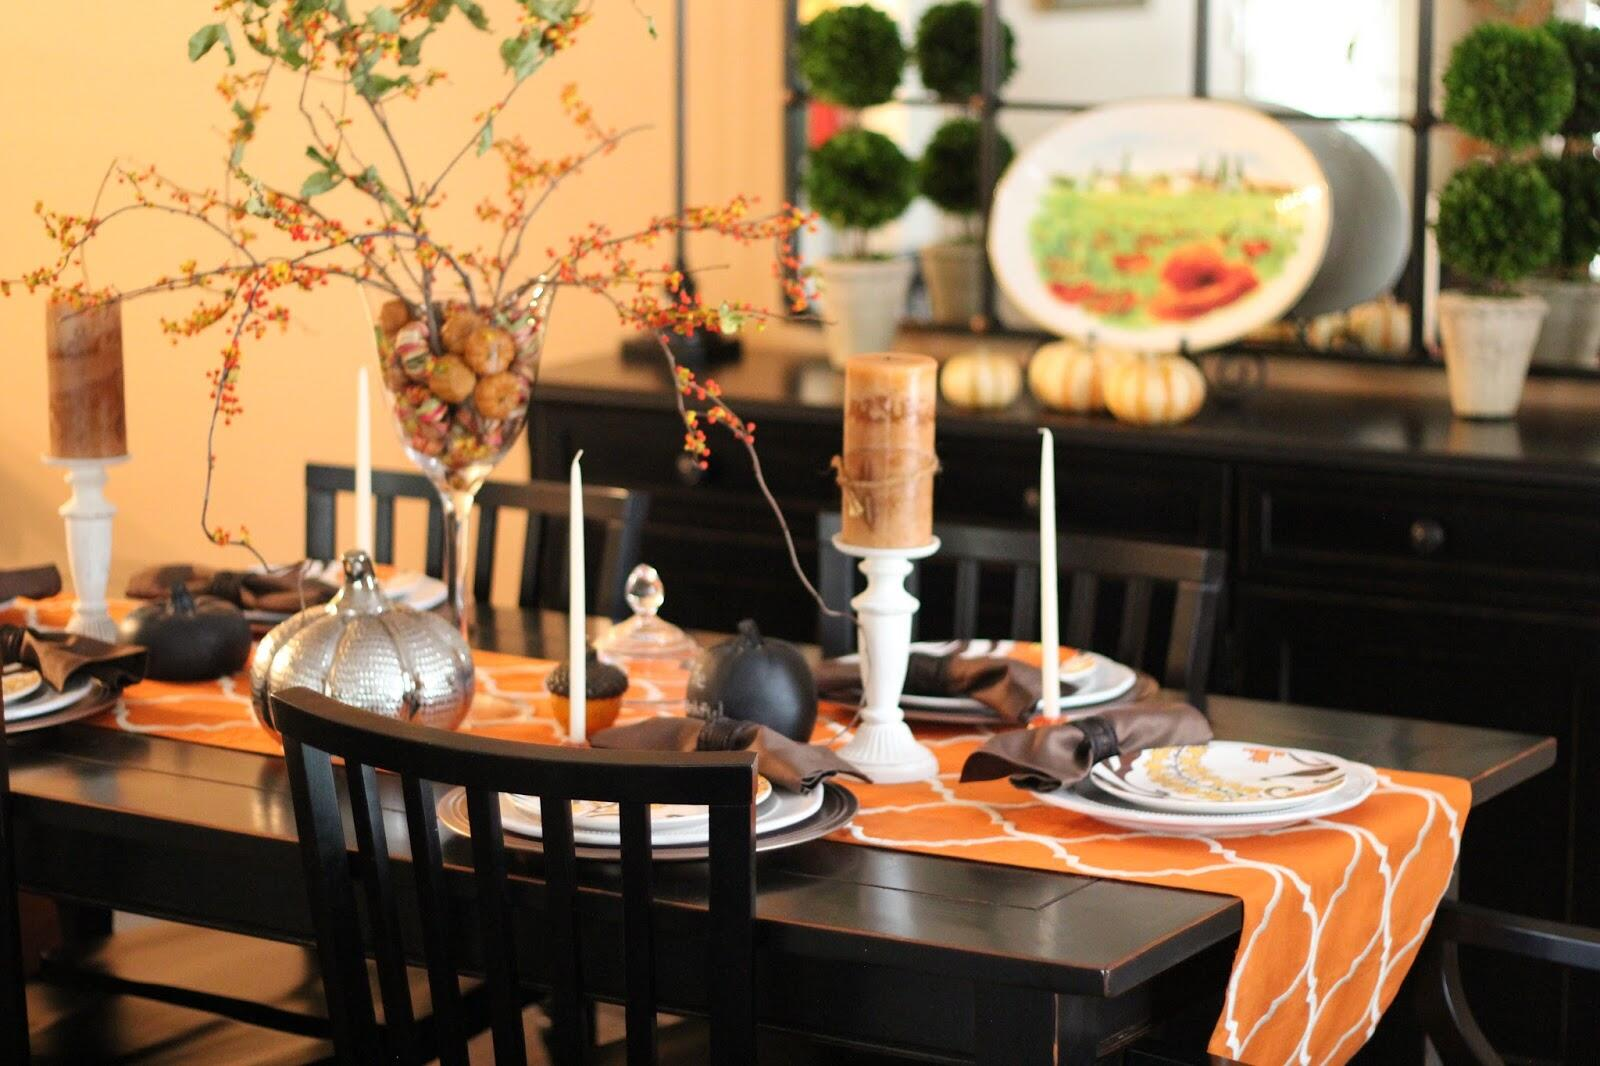 Thanksgiving Tablescape - How to Decorate for the Holidays by East Memphis blogger Walking in Memphis in High Heels